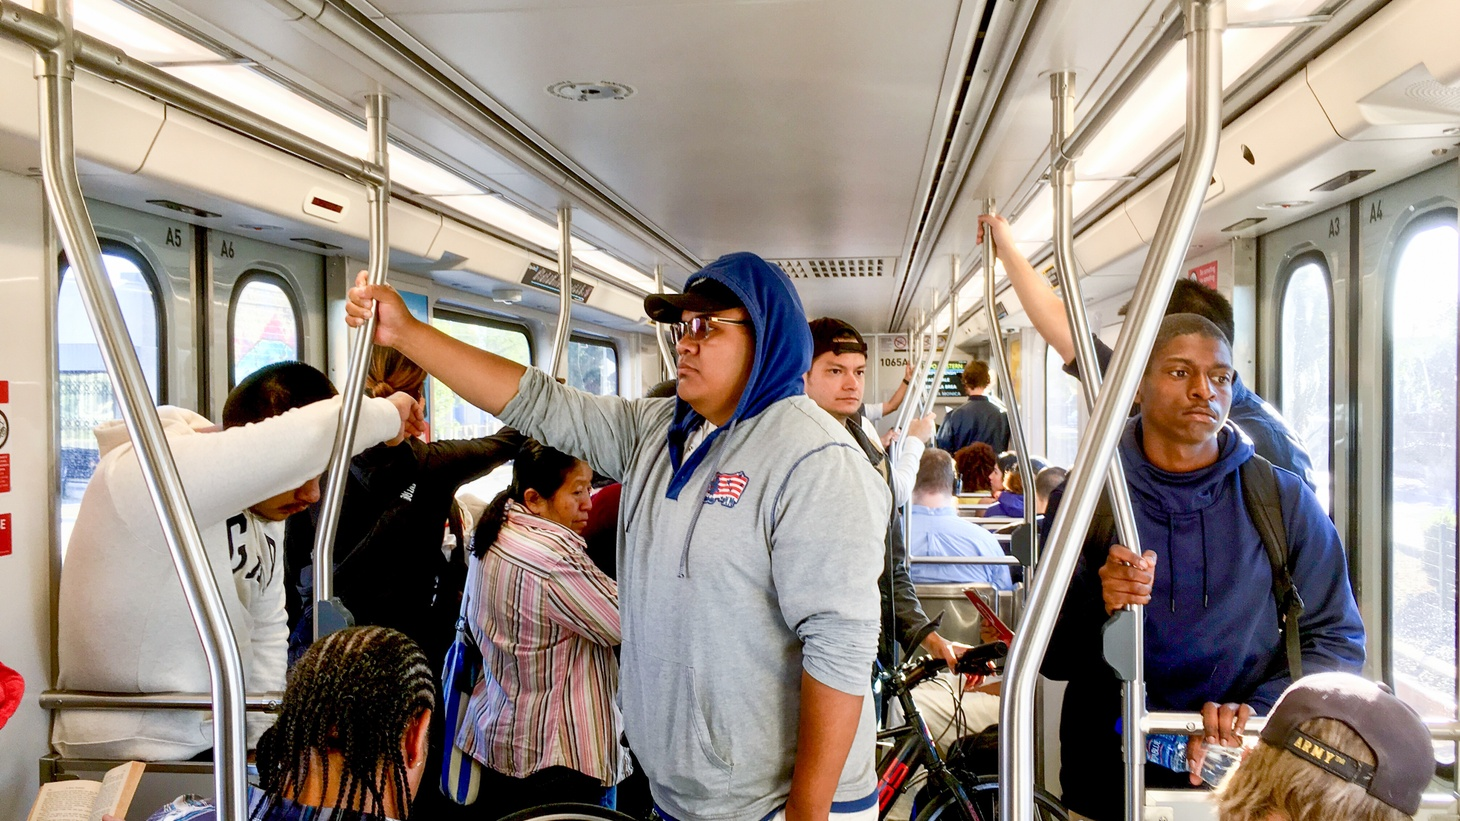 A crowded westbound Expo Line train on October 22, 2019.